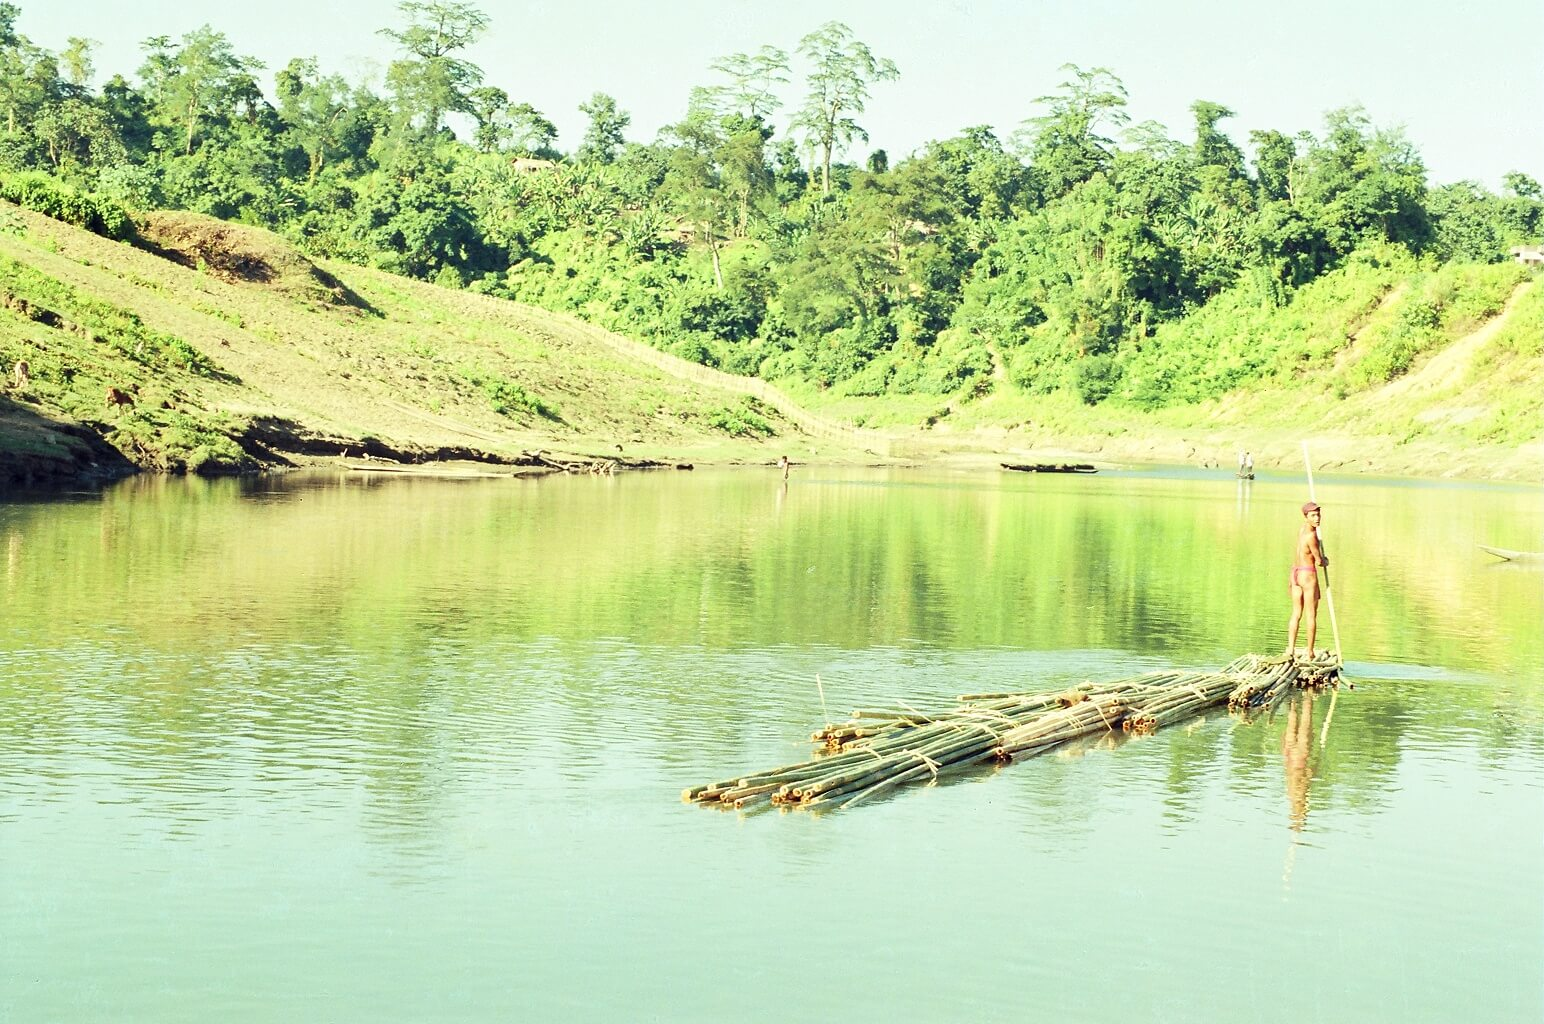 A rural river with natural view in Chittagong hill tracts